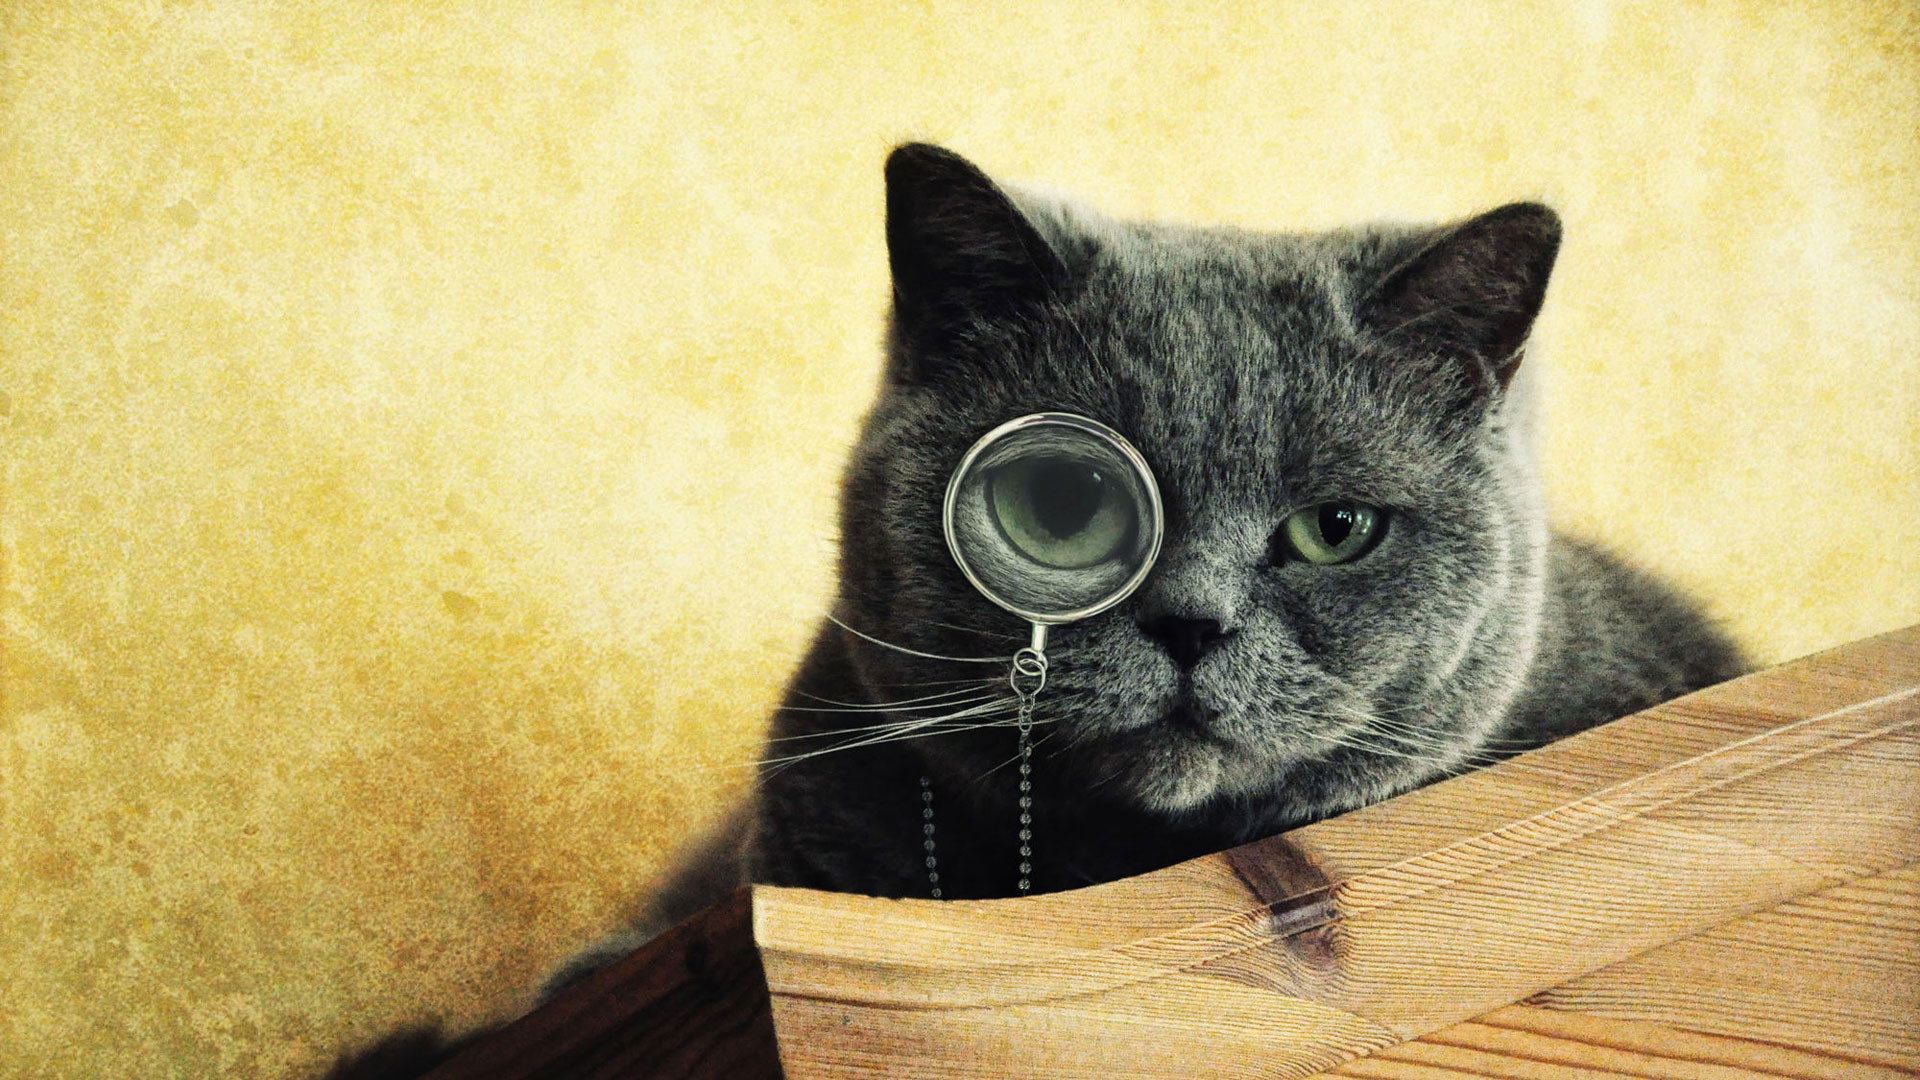 1920x1080 hd pics photos funny cat cute eye lens hd quality desktop background  wallpaper